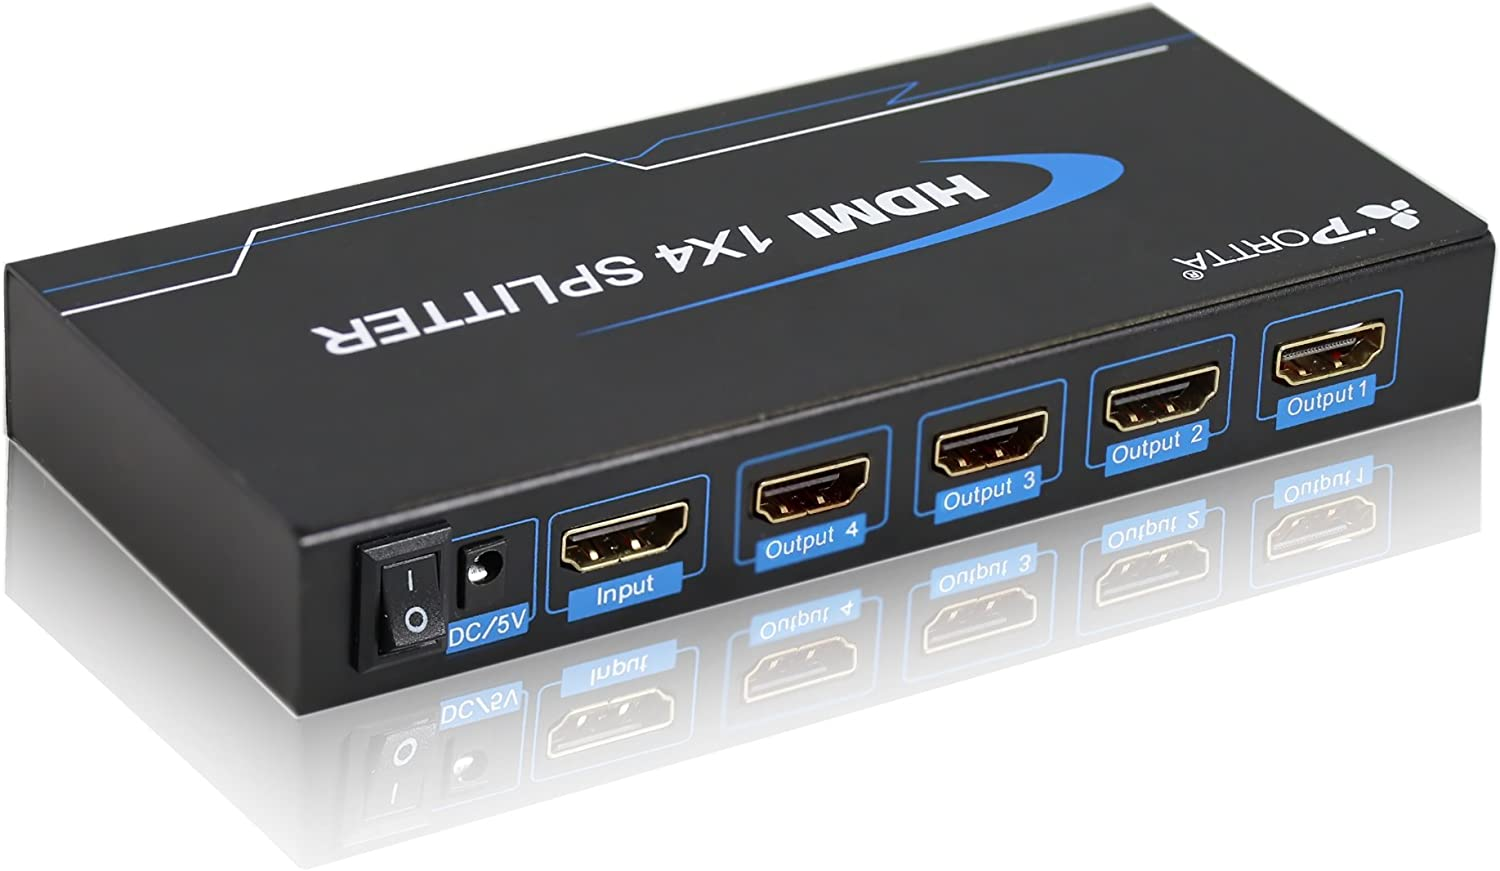 Portta 1x4 4 Ports HDMI Powered Splitter Ver 1.3 Certified for Full HD 1080P and 3D Support One Input to Four Outputs Deep Color Audio Real HDMI